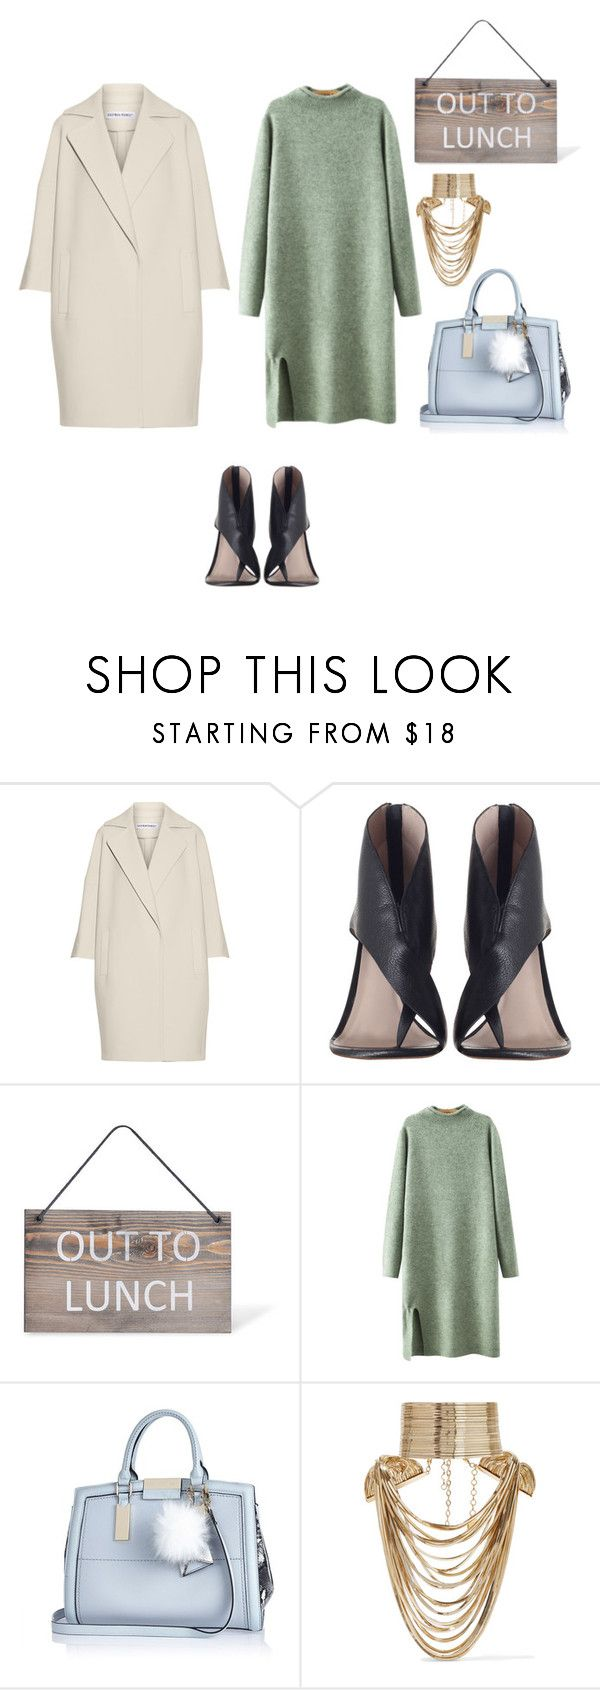 """""""Untitled #348"""" by theclothesmind on Polyvore featuring KaufmanFranco, Zimmermann, Garden Trading, Chicnova Fashion, River Island and Rosantica"""